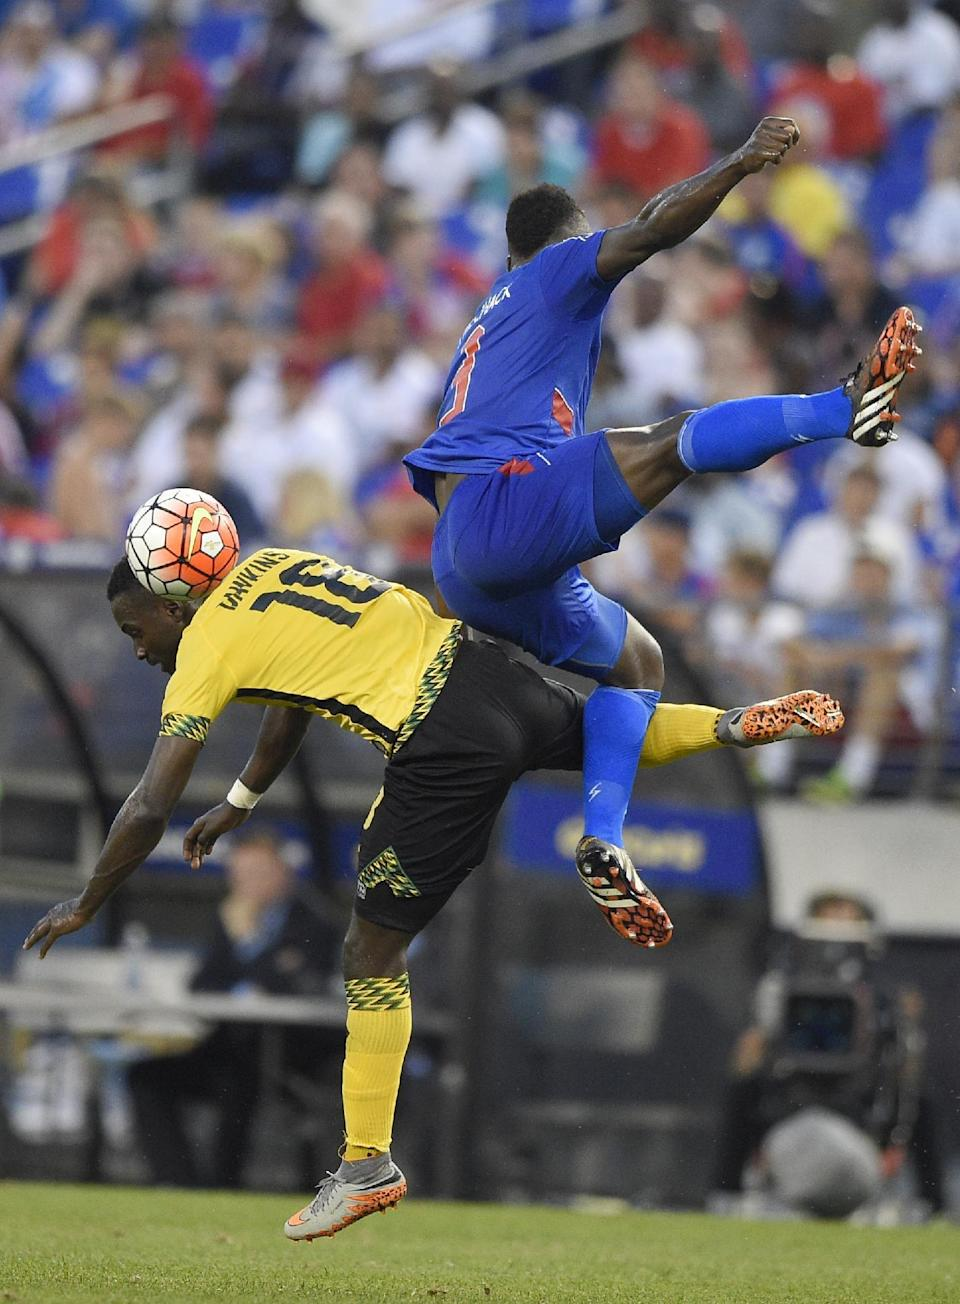 Jamaica midfielder Simon Dawkins (18) battles for the ball against Haiti defender Mechack Jerome, right, during the first half of a CONCACAF Gold Cup soccer quarterfinal, Saturday, July 18, 2015, in Baltimore. (AP Photo/Nick Wass)